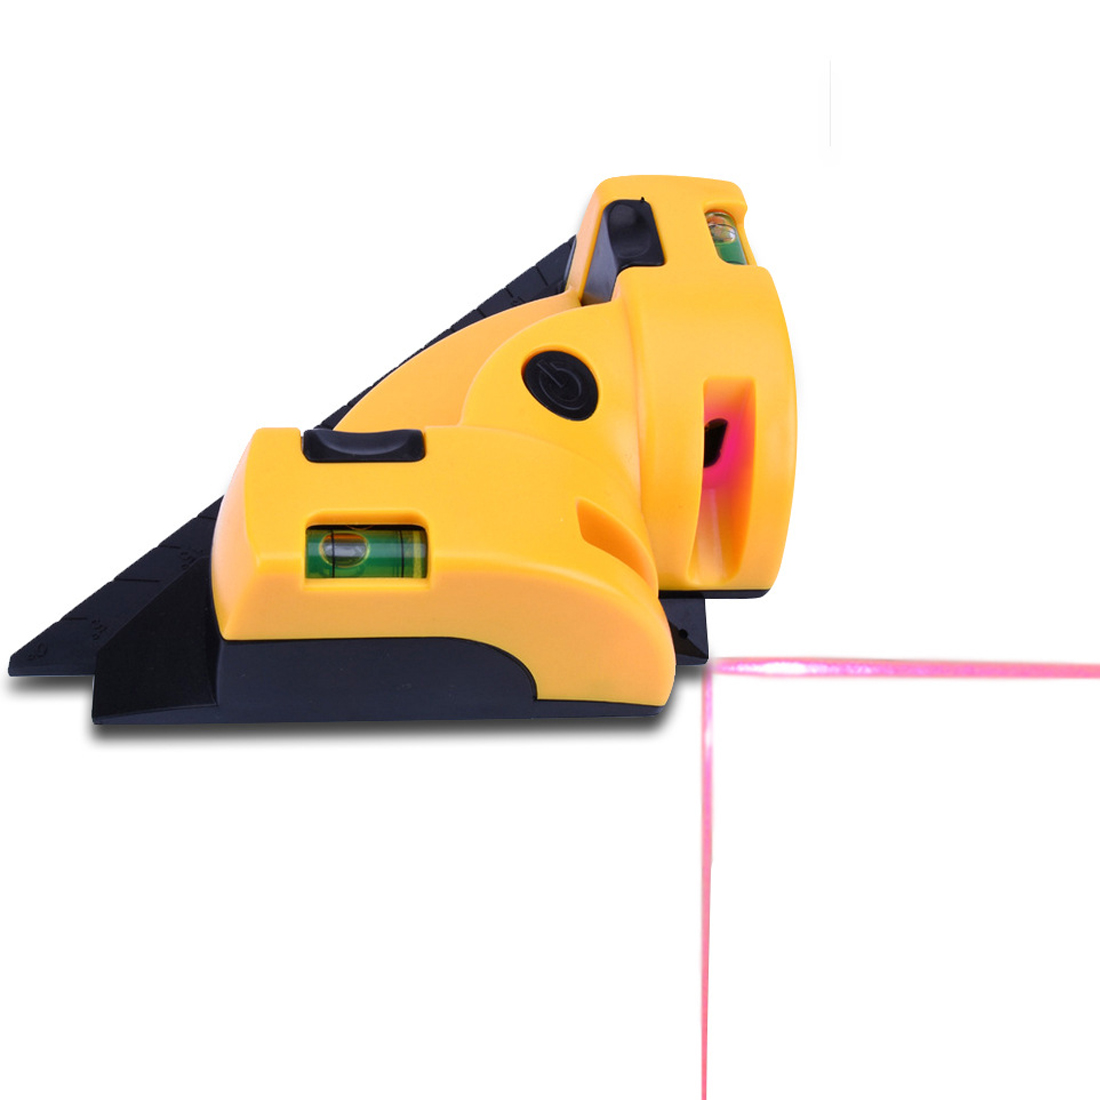 Right Angle 90 Degree Vertical Horizontal Laser Line Projection Square Level kapro laser level laser angle meter investment line instrument 90 degree laser vertical scribe 20 meters